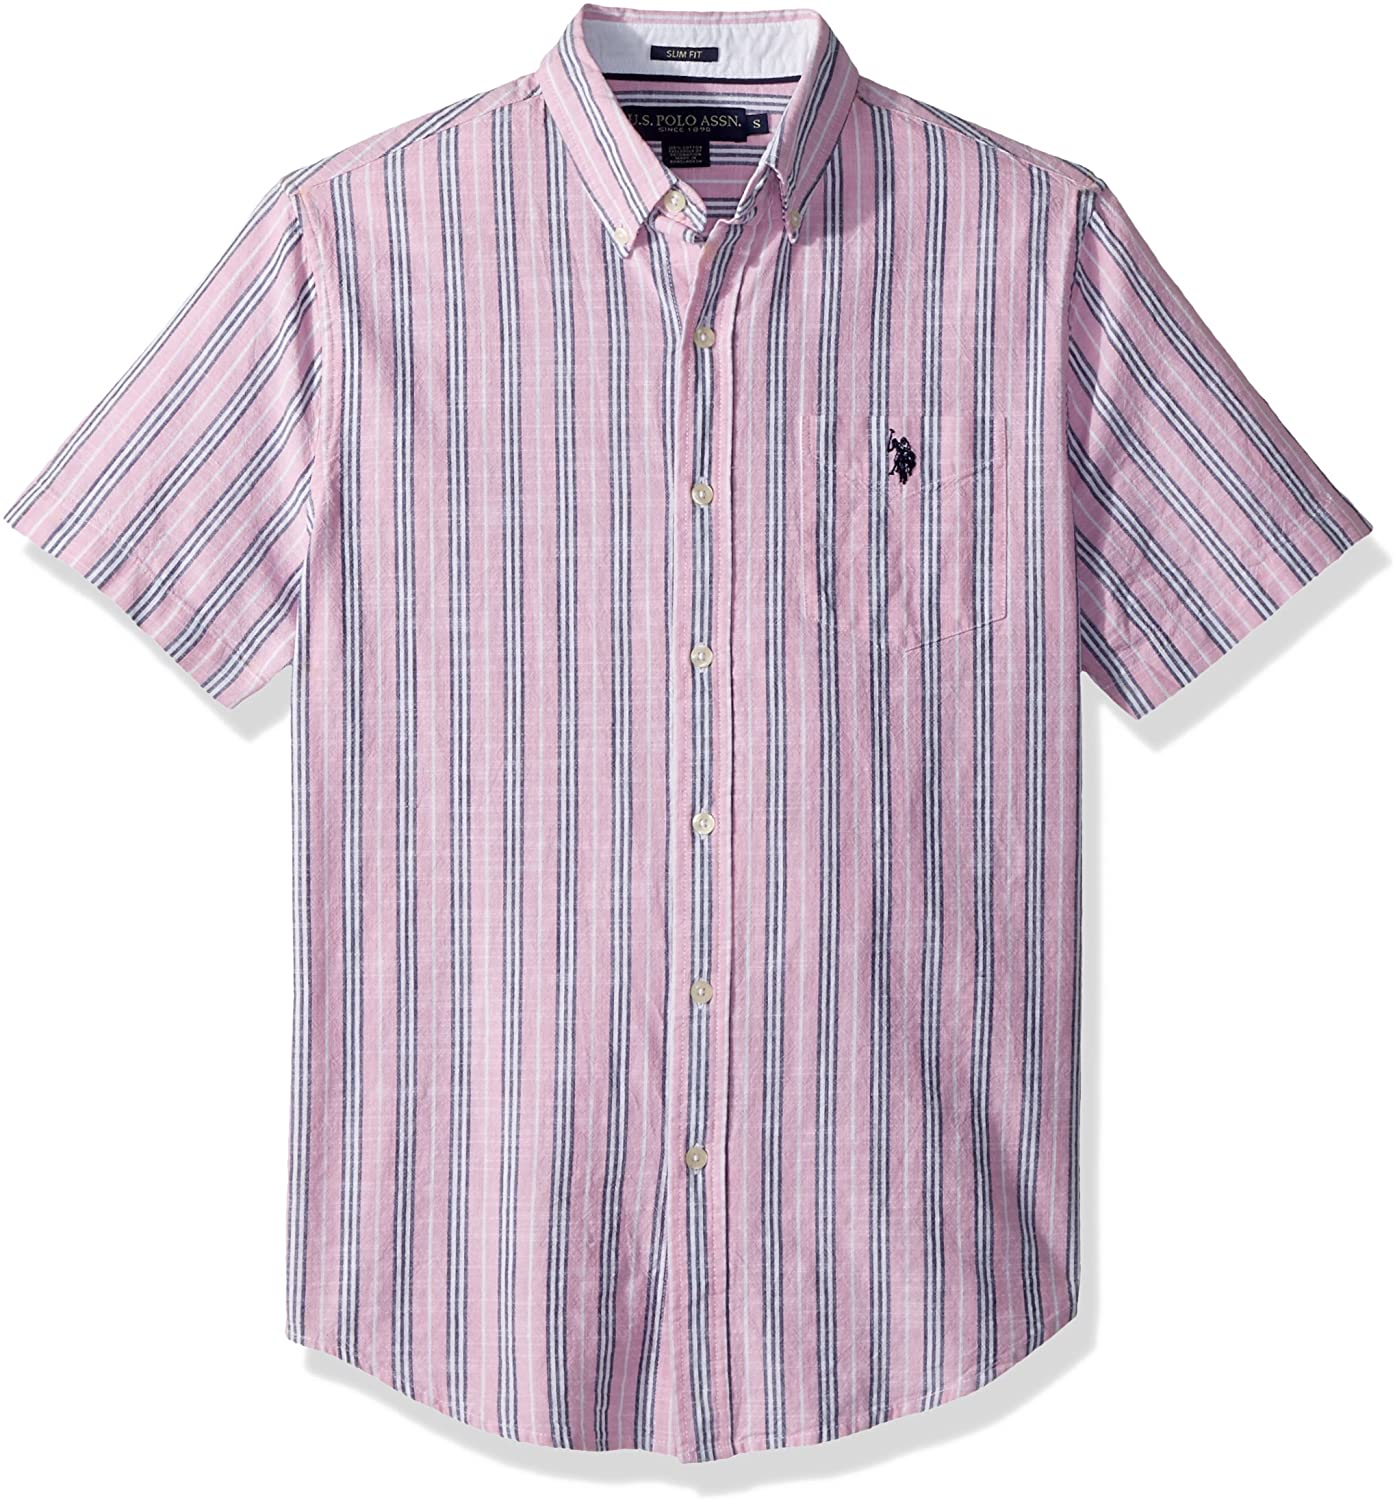 Mens Short Sleeve Slim Fit Striped Shirt U.S Polo Assn